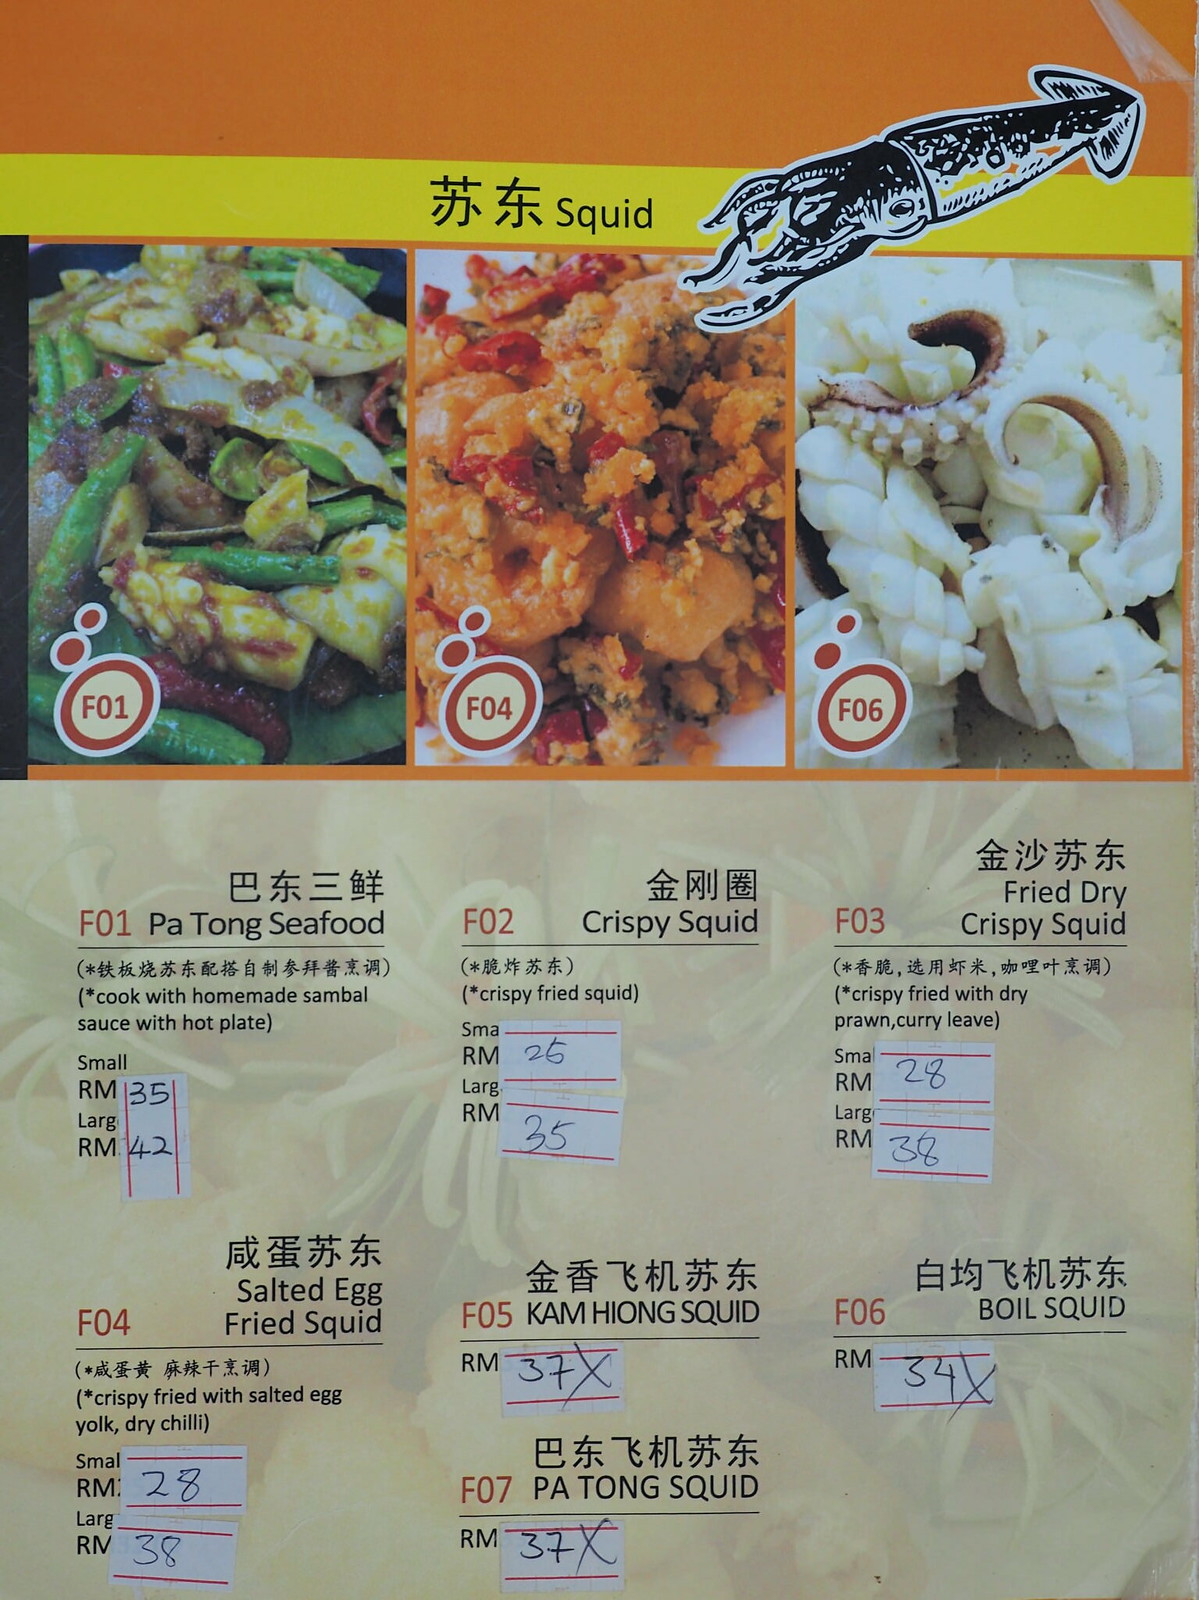 Squid menu Lala menu from Pangkor Village Seafood, Taman Megah